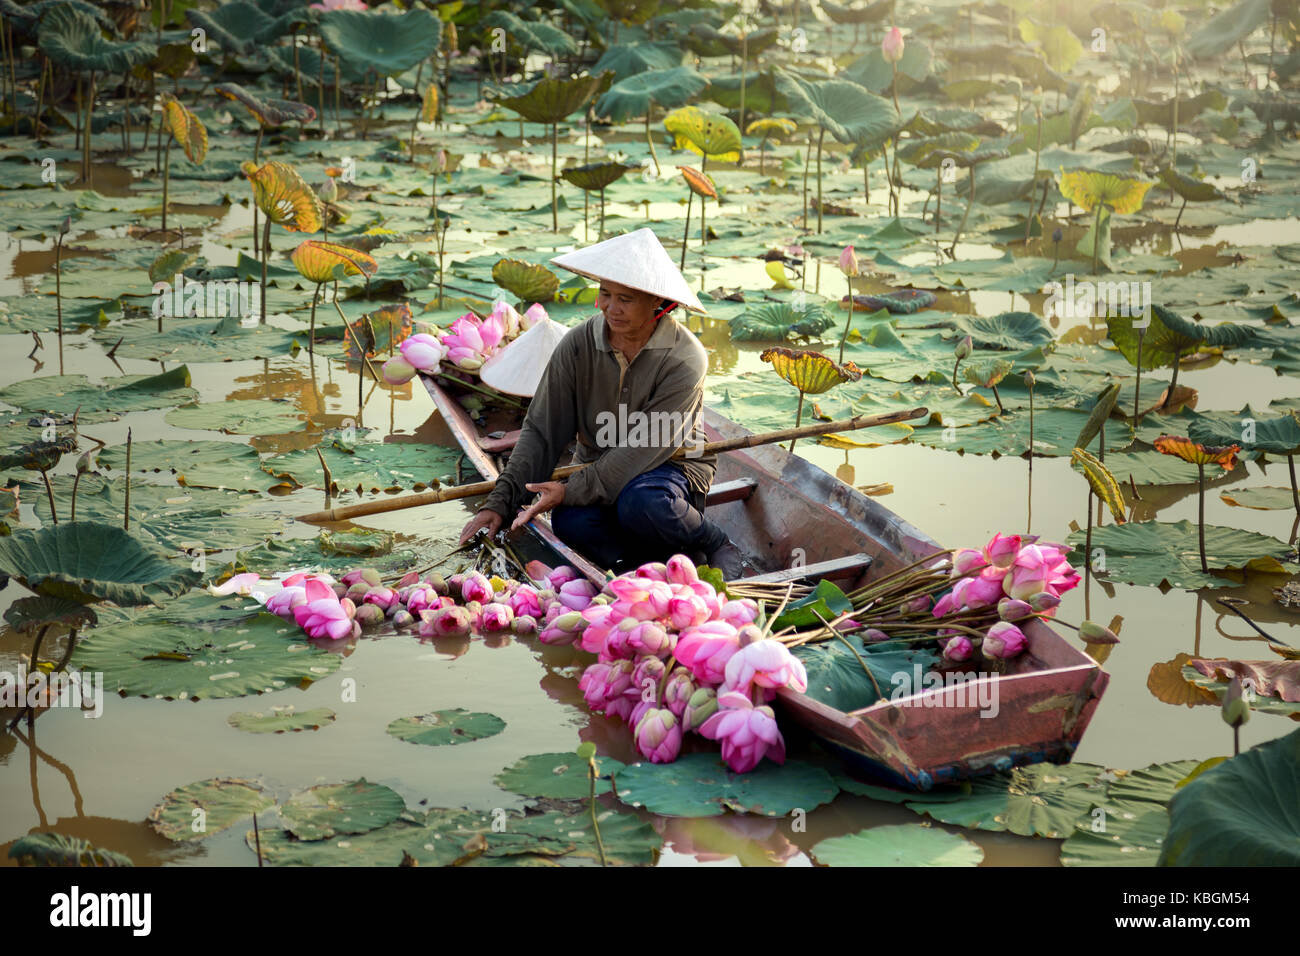 Thailand women harvest lotus flower on the lake - Stock Image